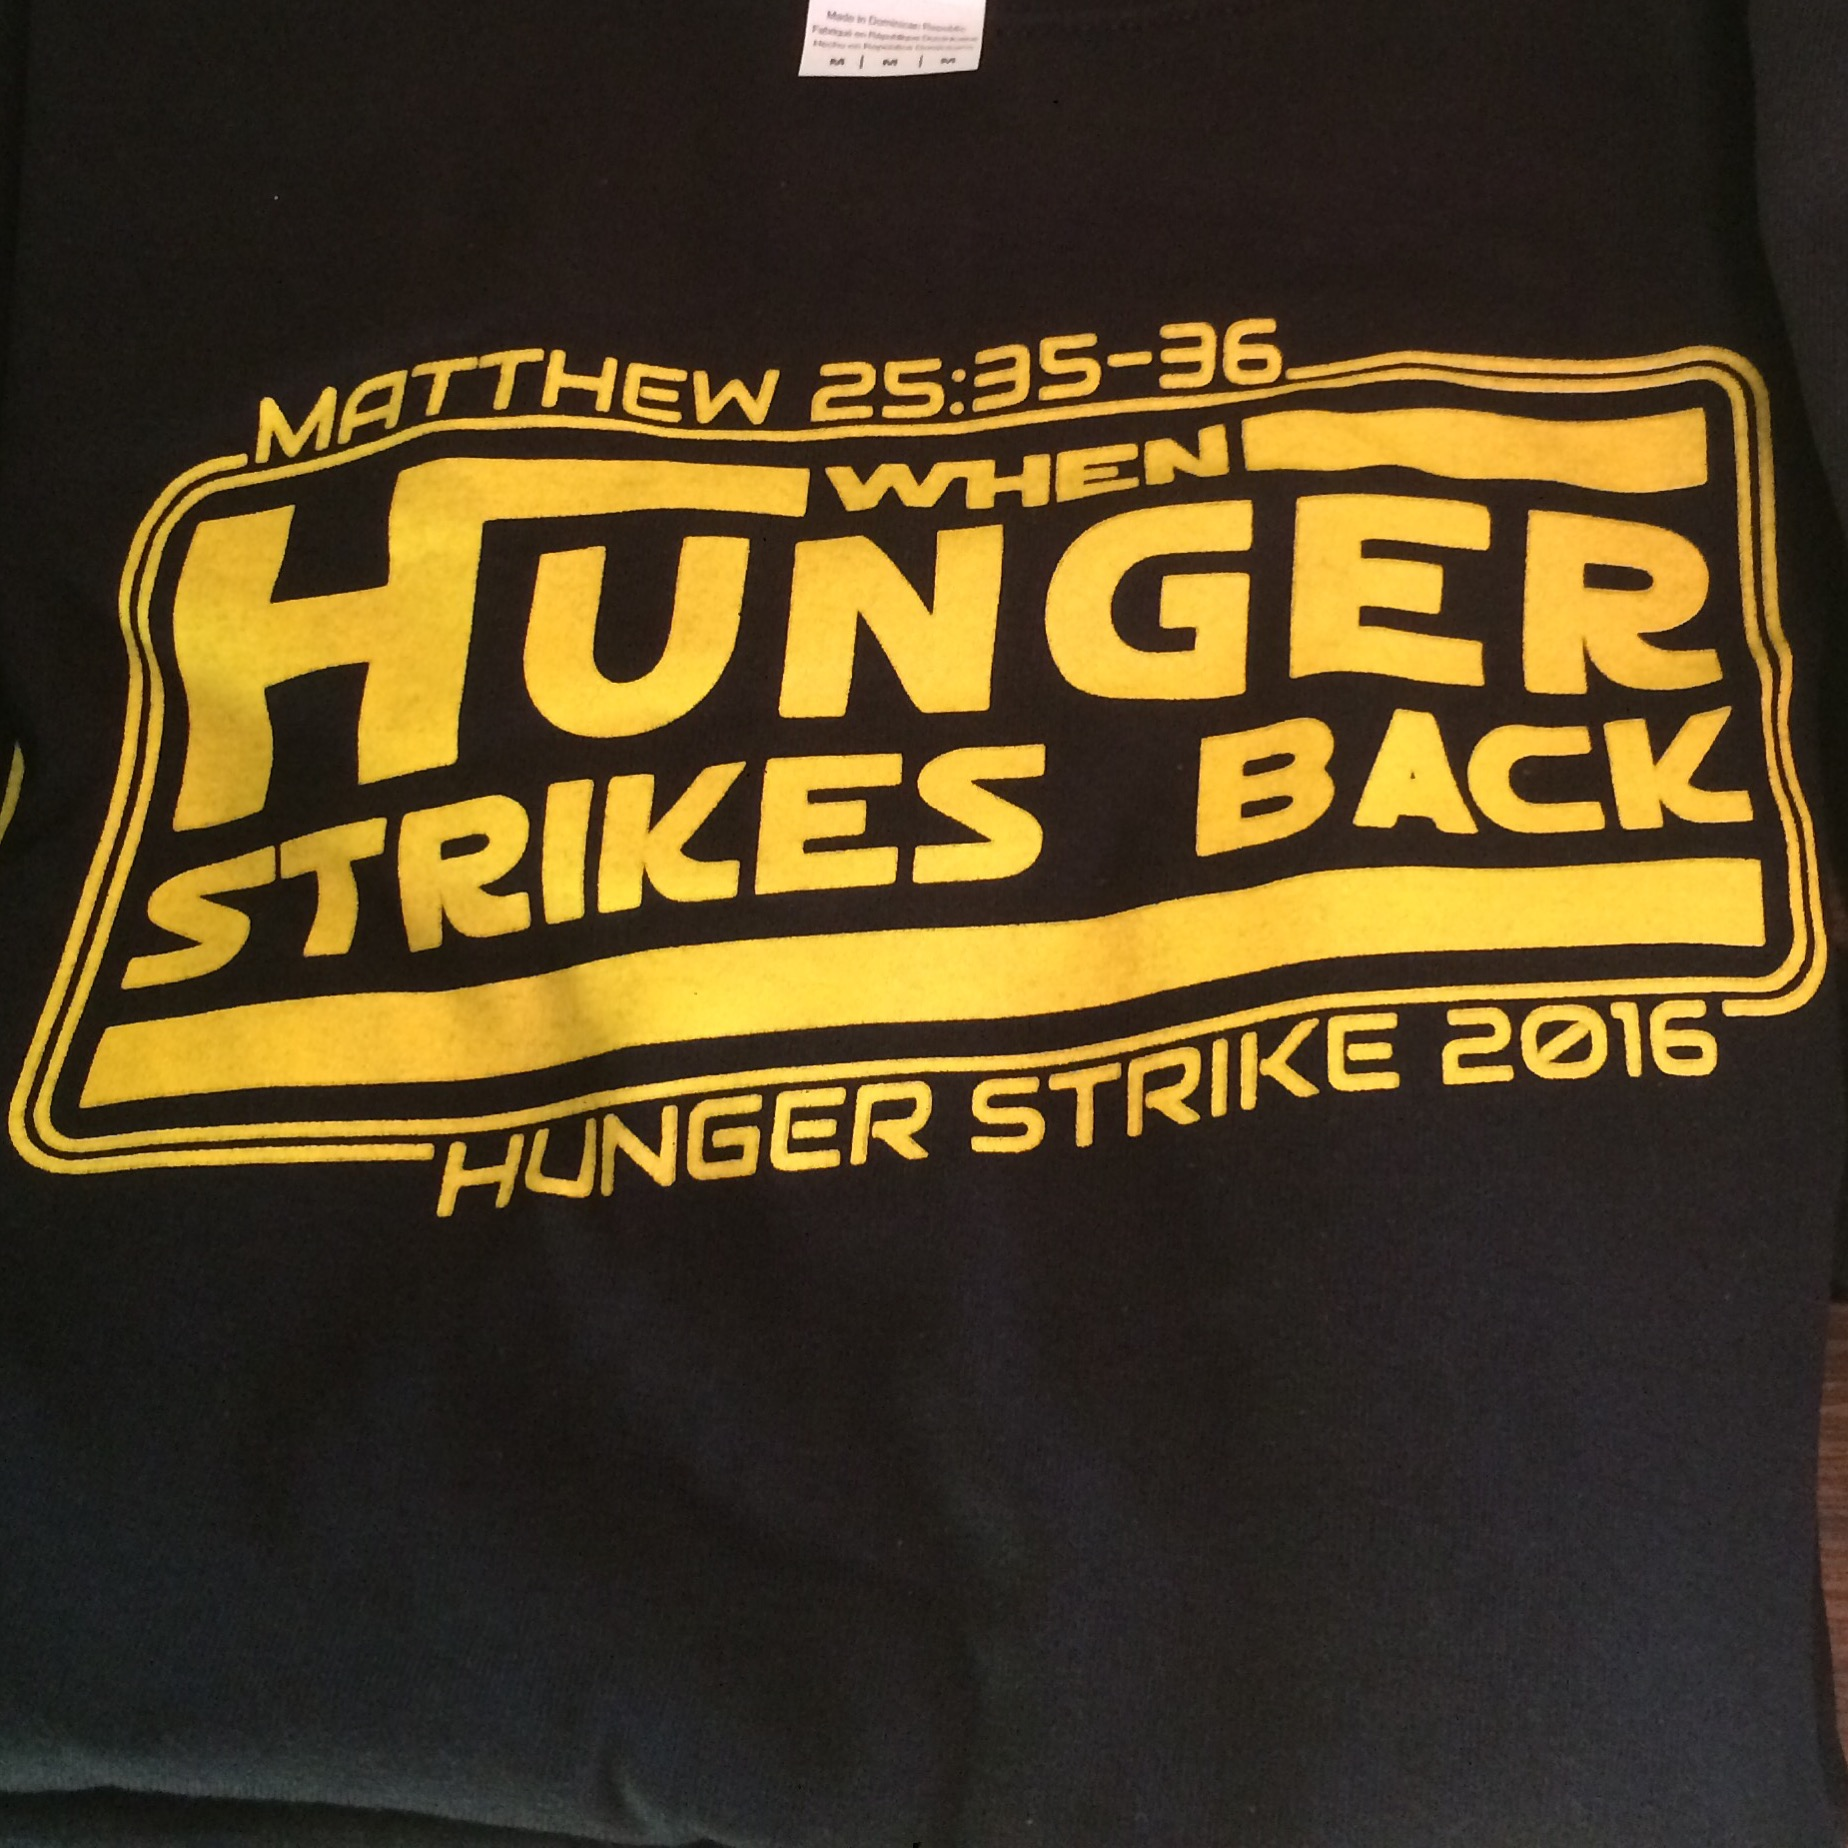 When Hunger Strikes Back!